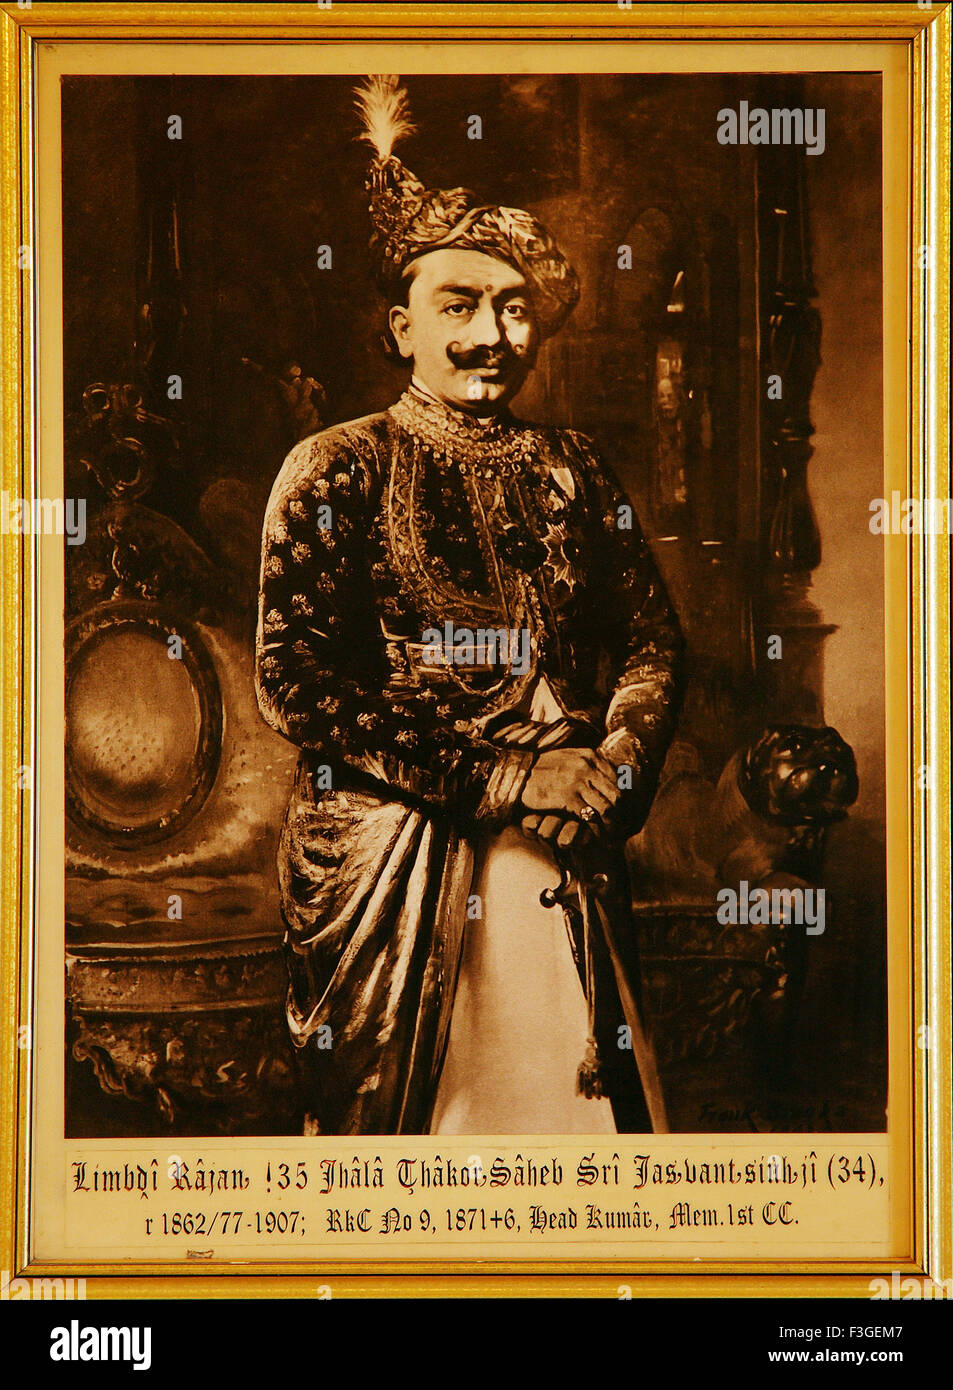 Painting and old royal portrait Limboi Rajan 35 Thakur Saheb Sri Jasvant Singh Ji 34 1862/77 1907 ; Gujarat ; India - Stock Image